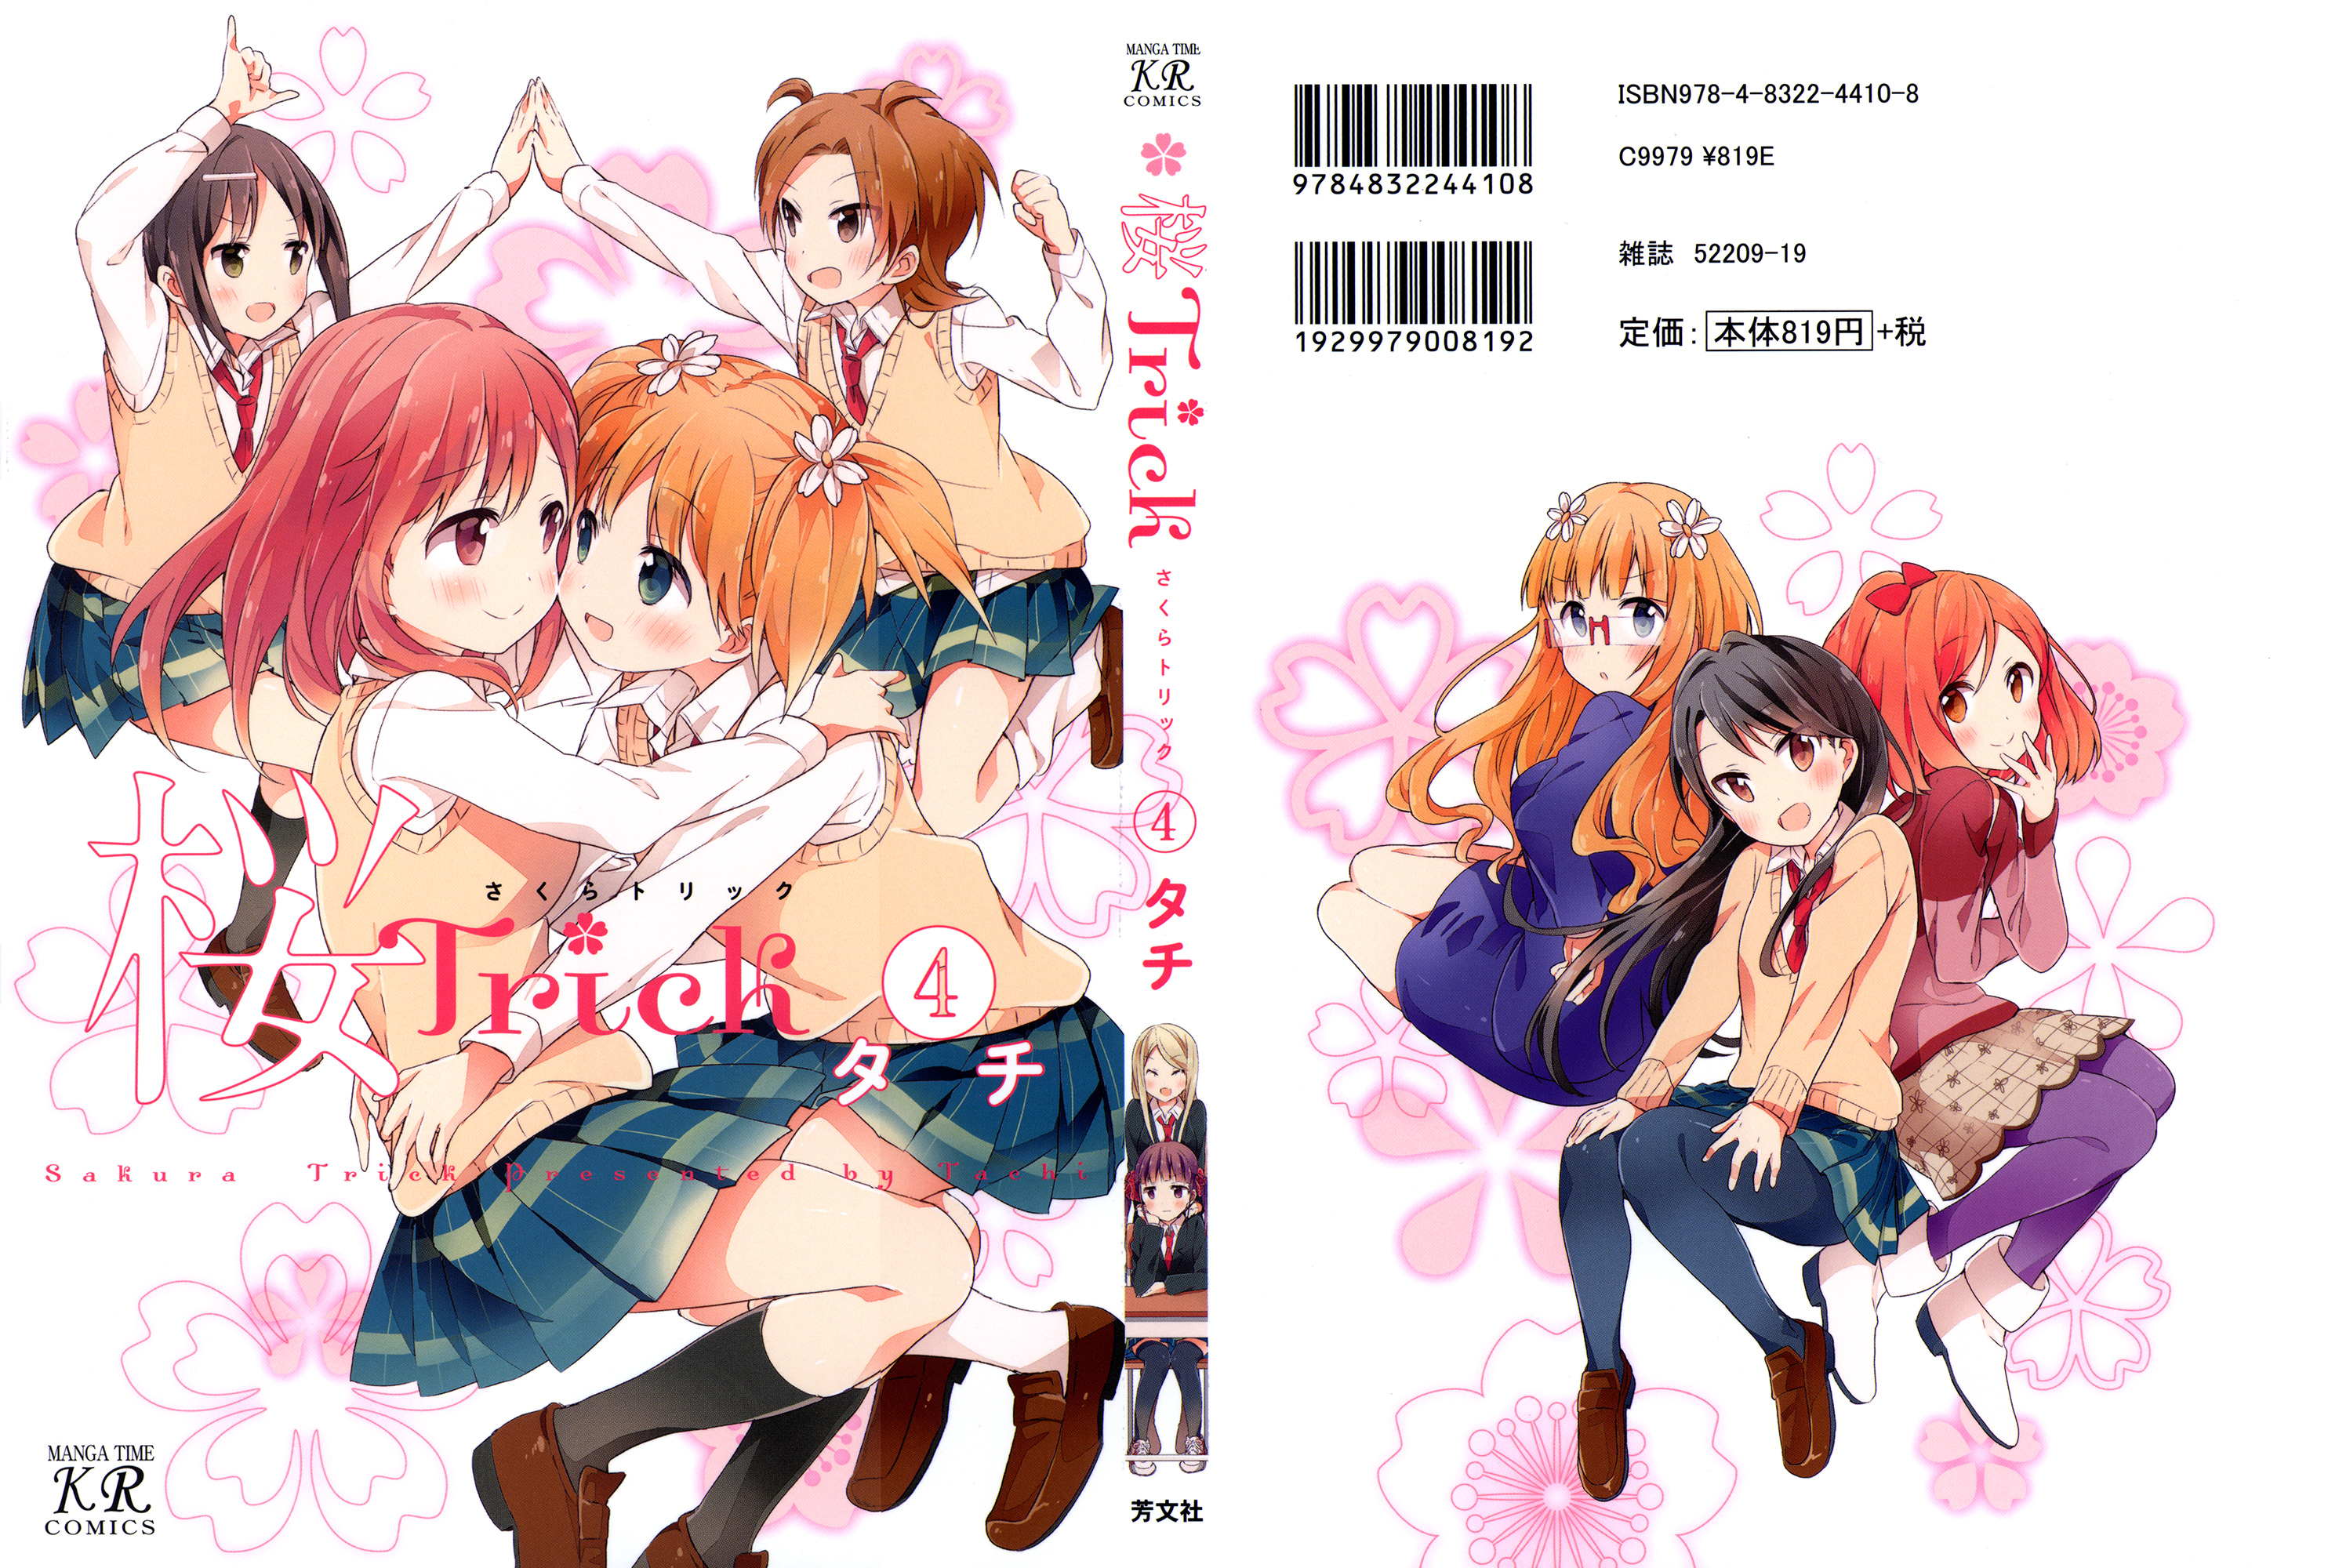 The jacket and cover of Sakura Trick volume 4 manga.